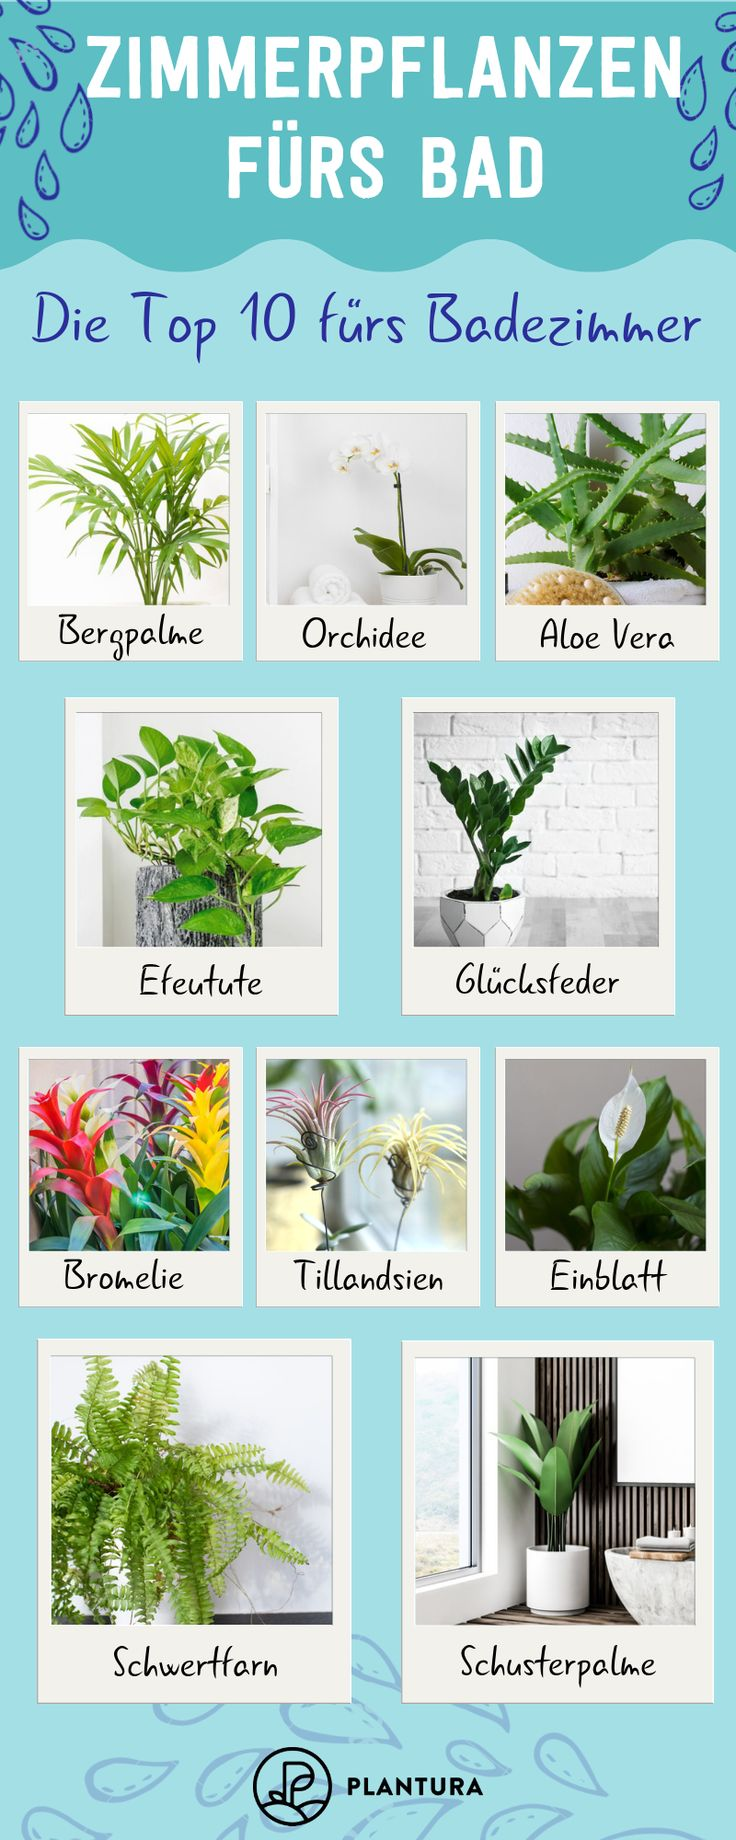 Plants for the bathroom: Our Top 10